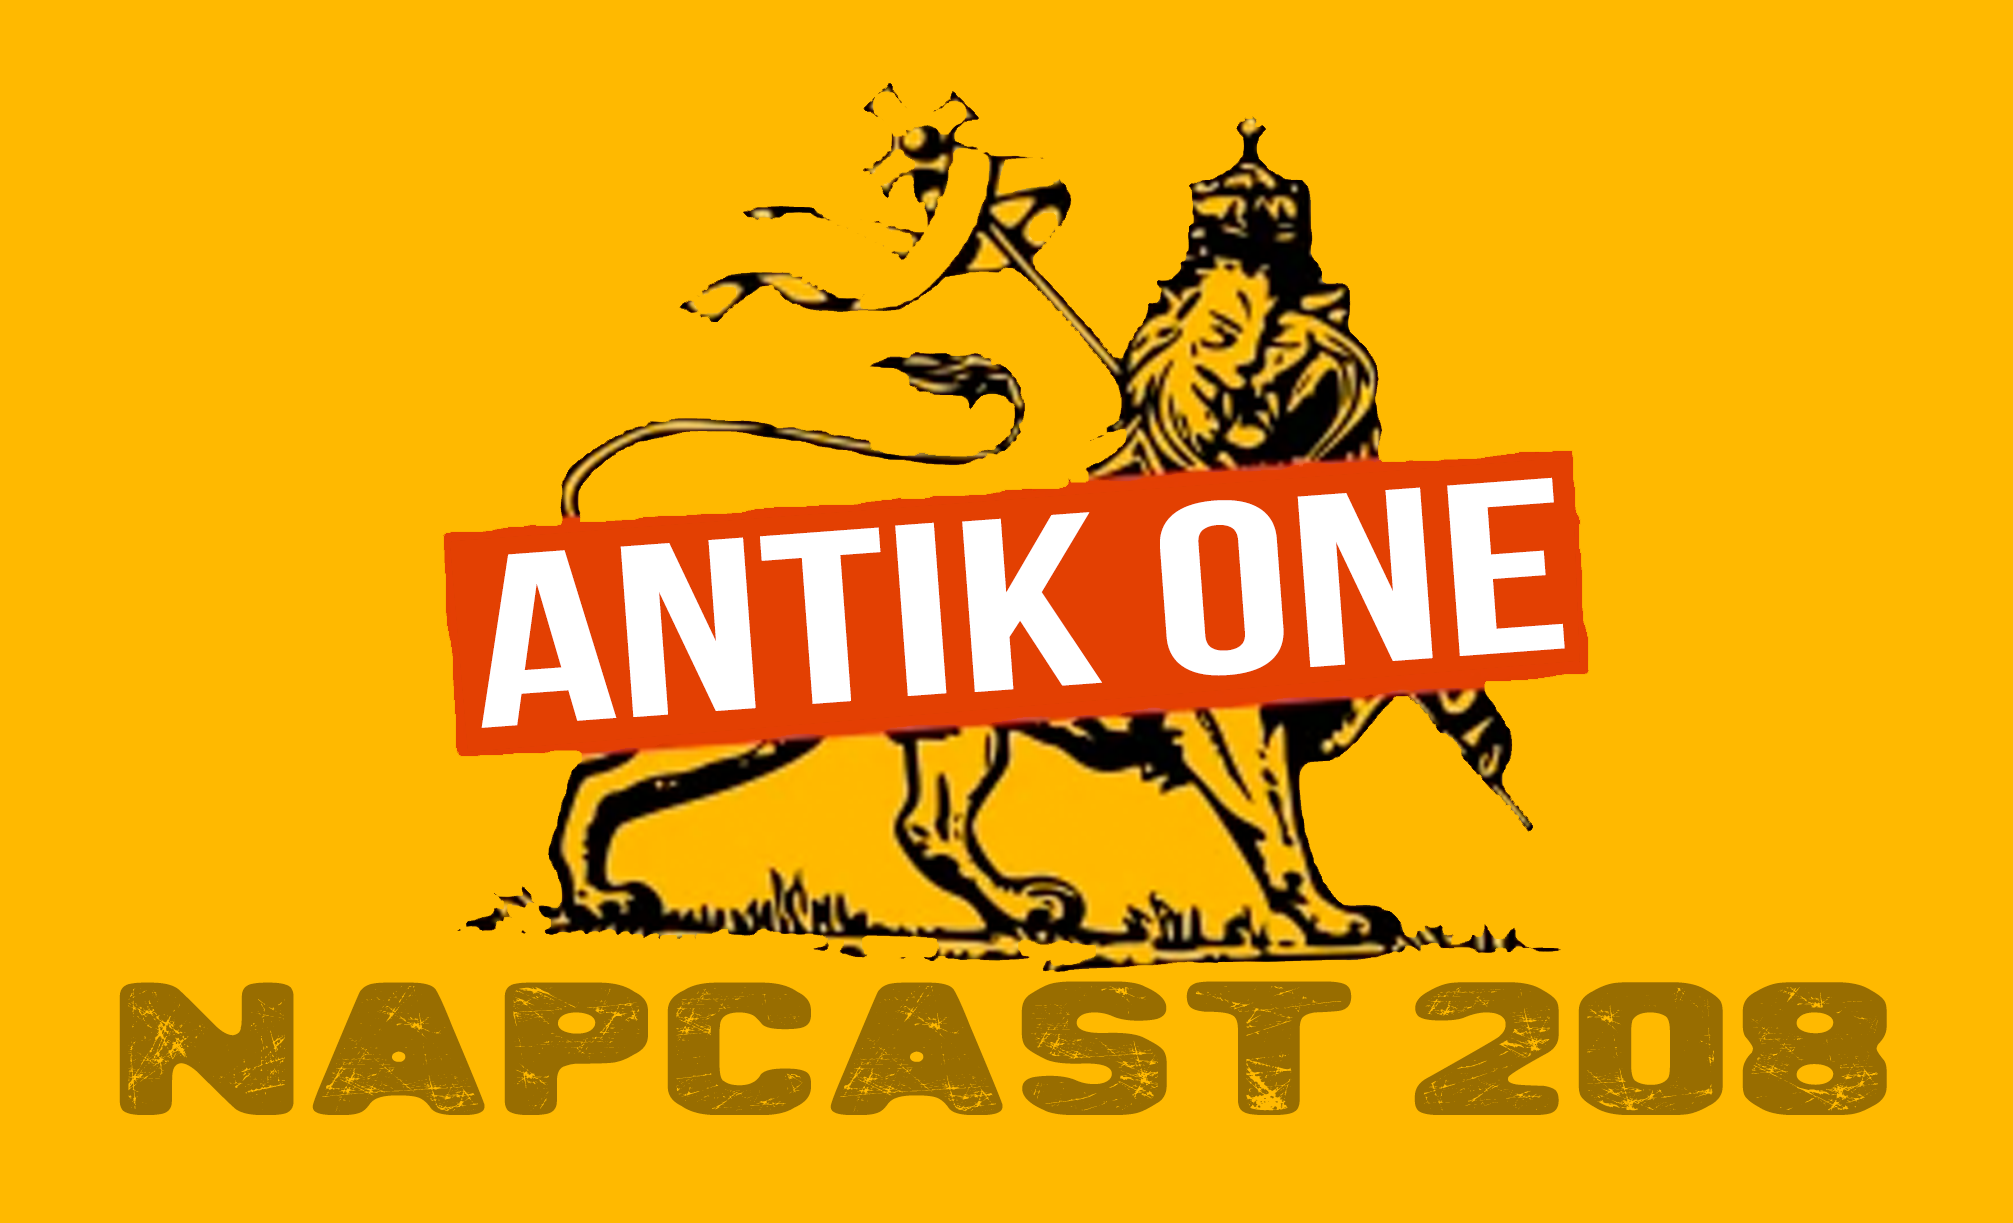 [Mix] NAP DNB presents NAPCast 208 - Antik One